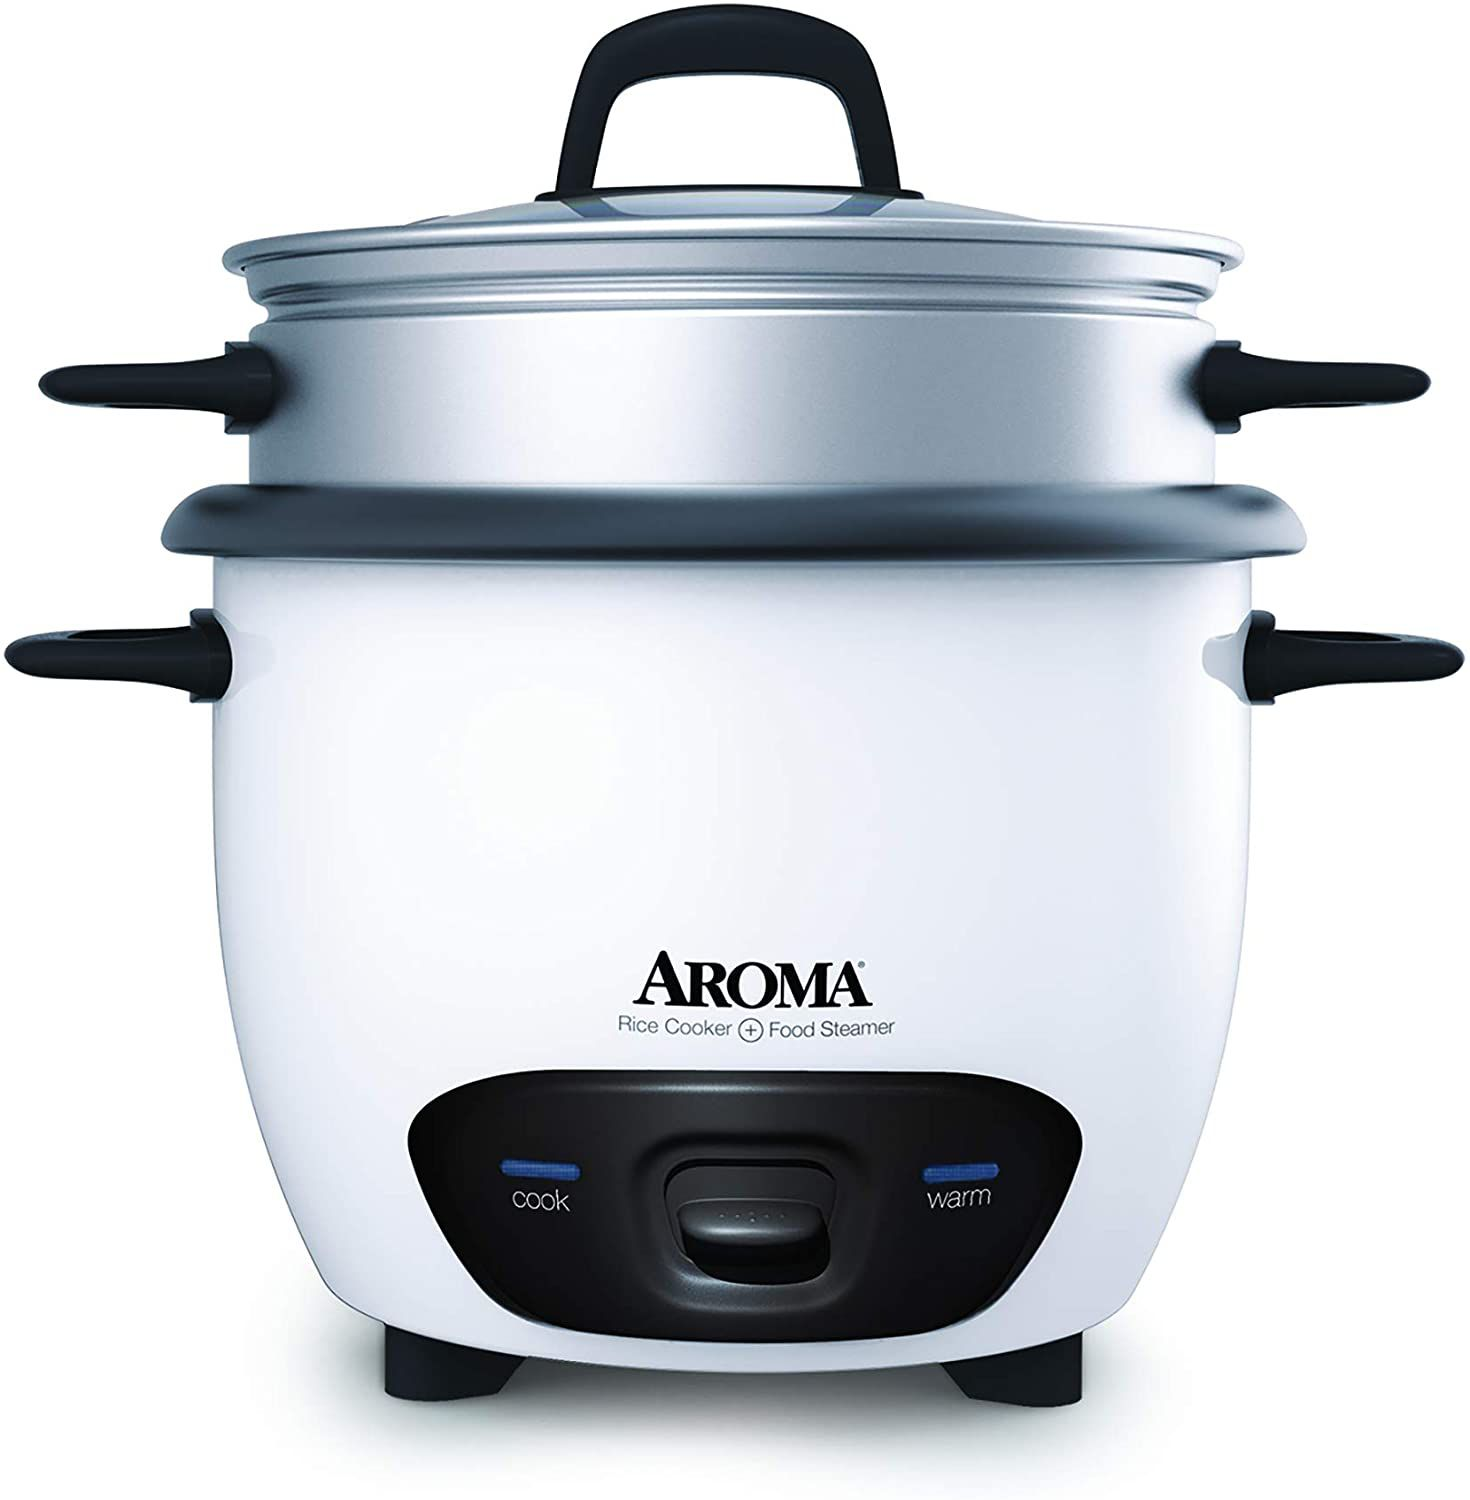 Aroma Housewares 6-Cup (Cooked) Pot-Style Rice Cooker & Food Steamer (ARC-743-1NG)